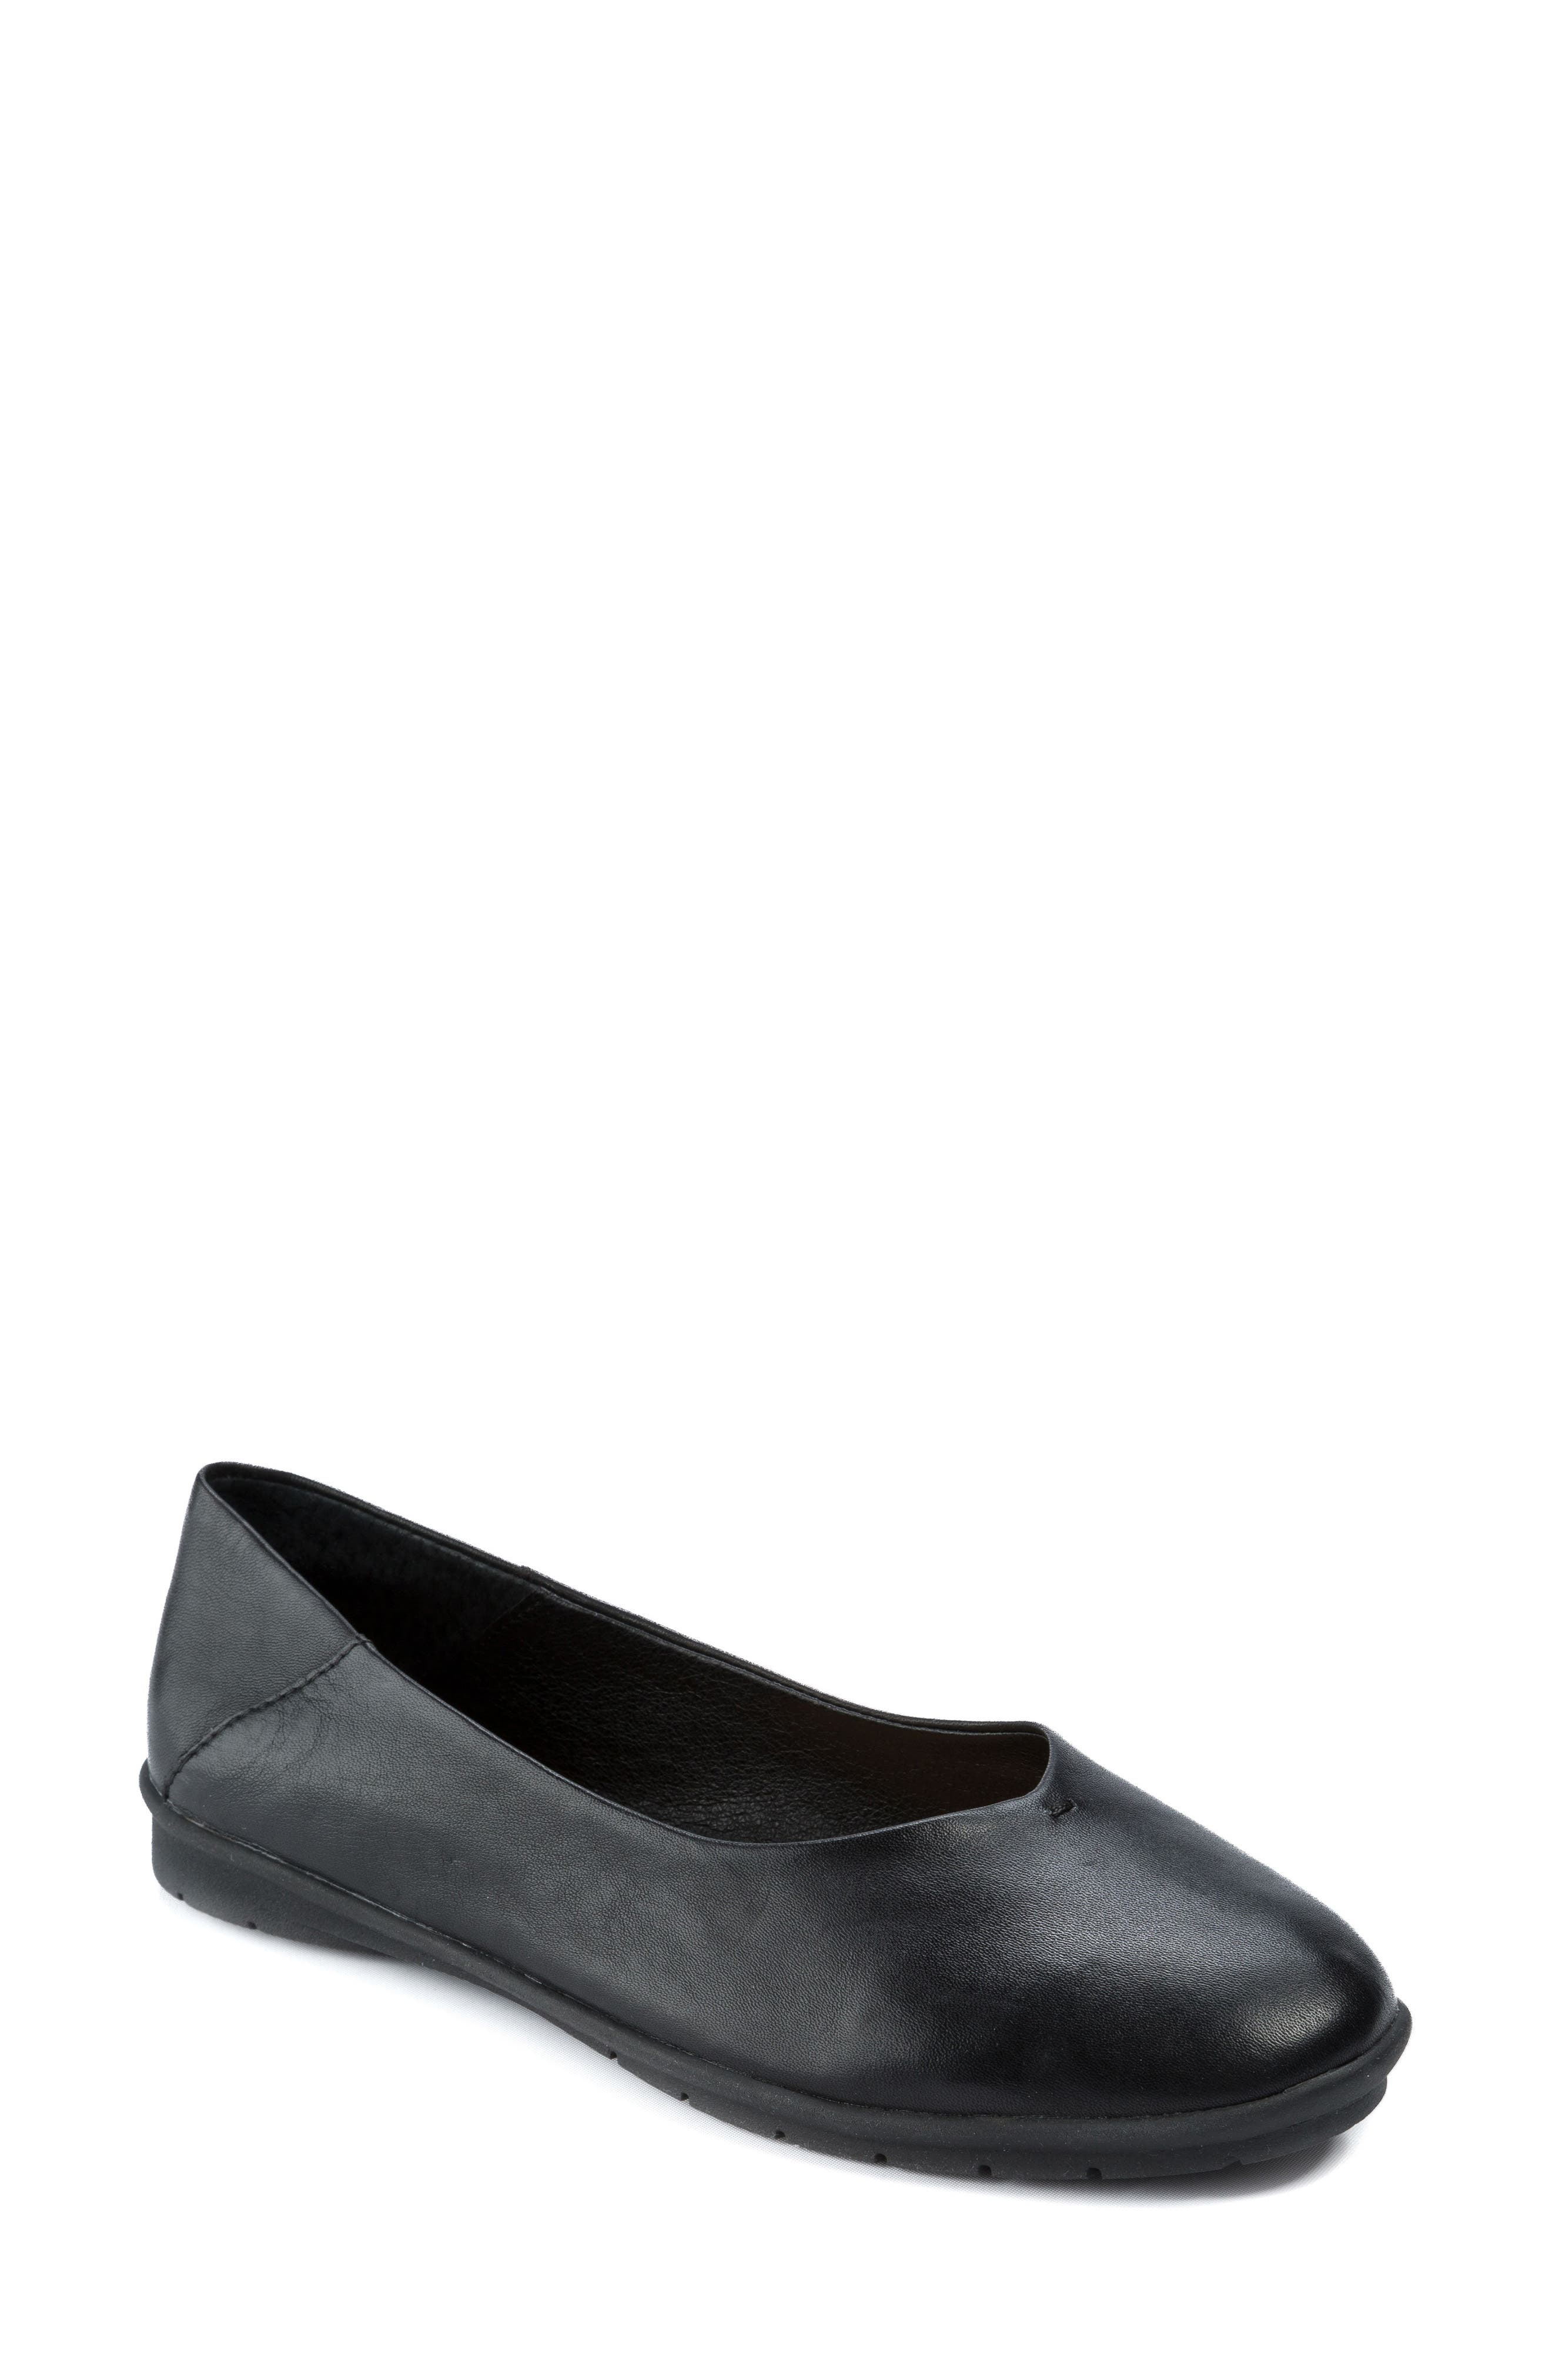 Natalia Flat,                             Main thumbnail 1, color,                             Black Leather